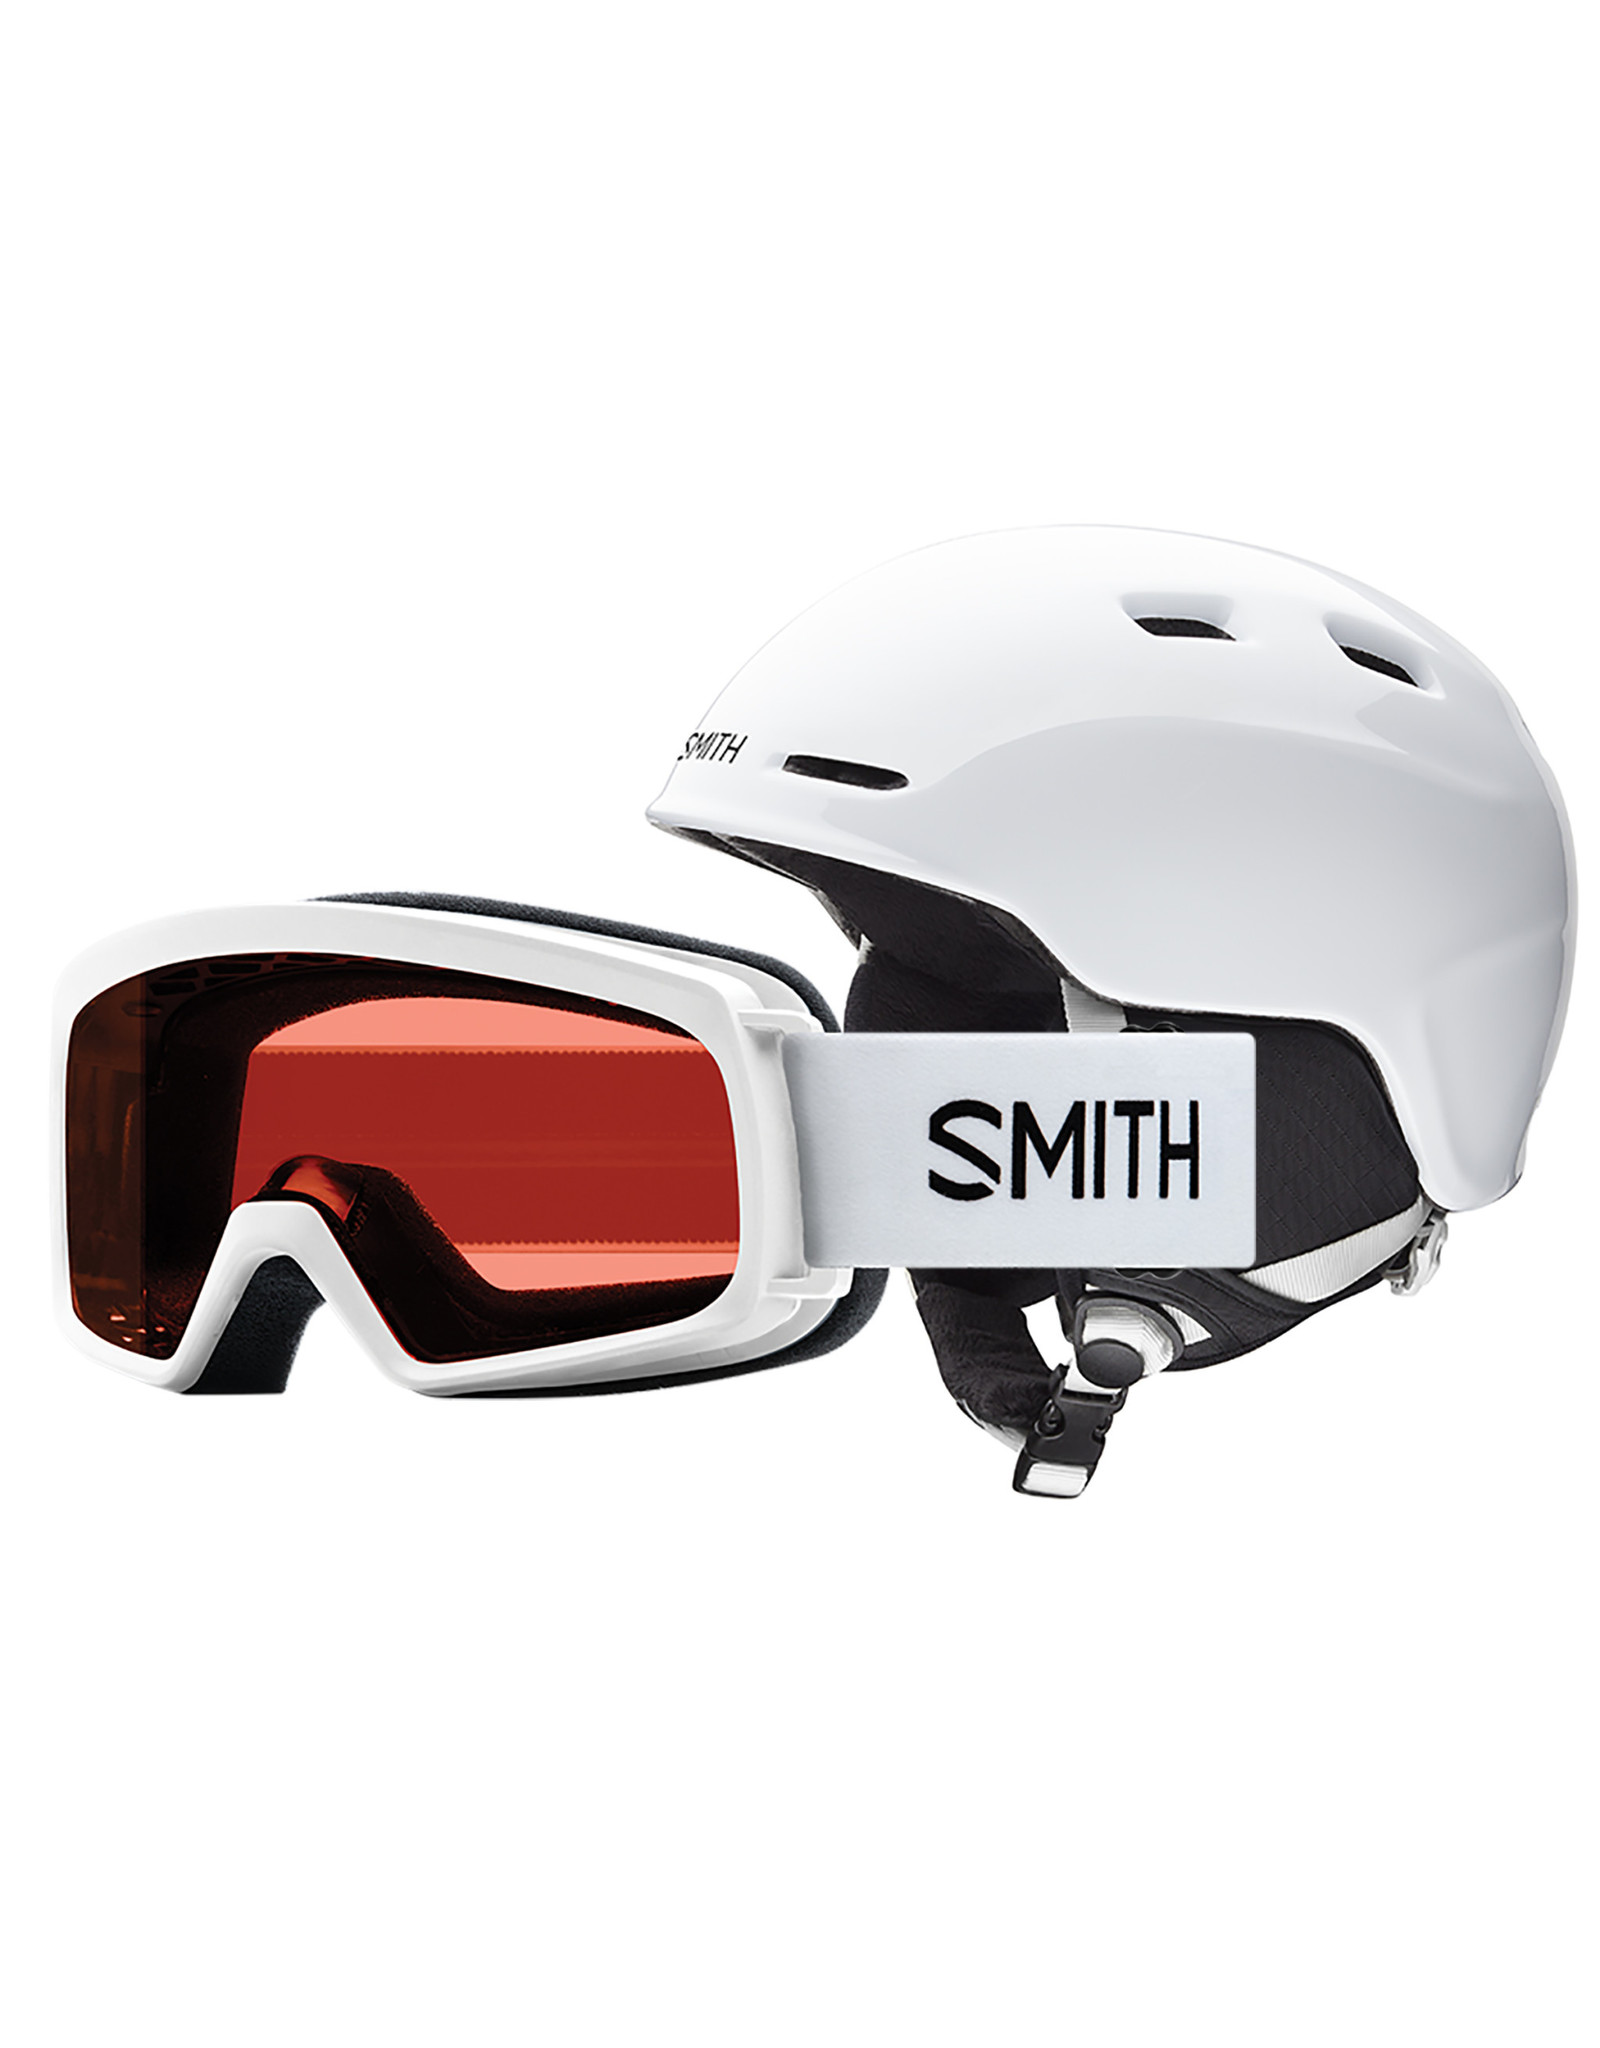 Smith SMITH ZOOM JR RASCAL COMBO WHITE 20 GOGGLE & HELMET